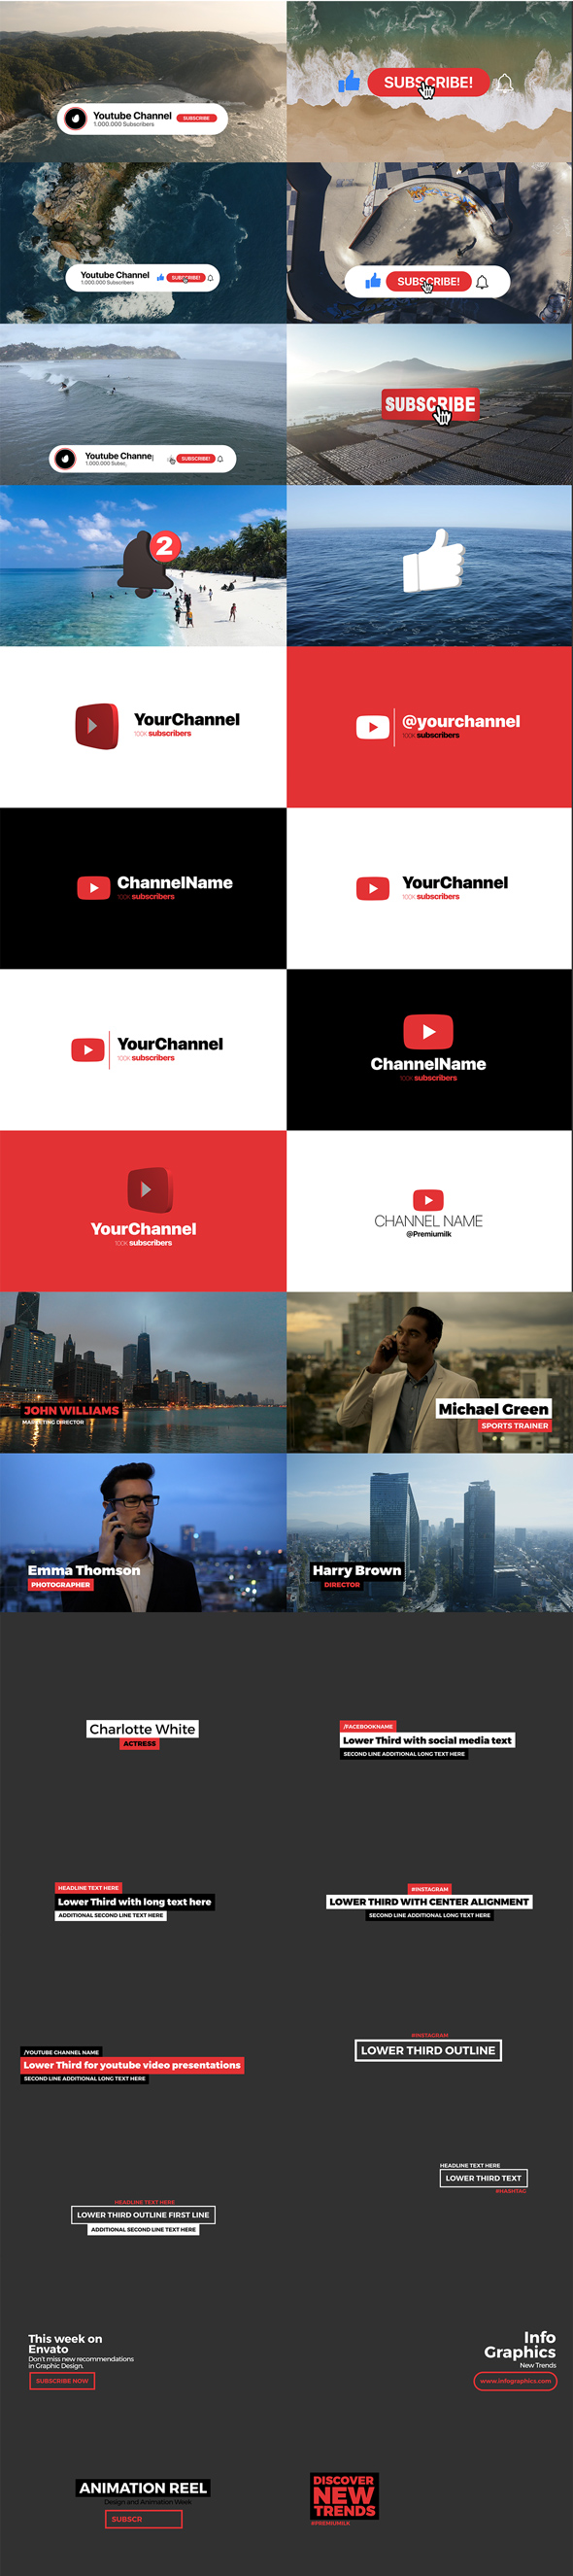 Youtube Pack - Extension Tool - 9